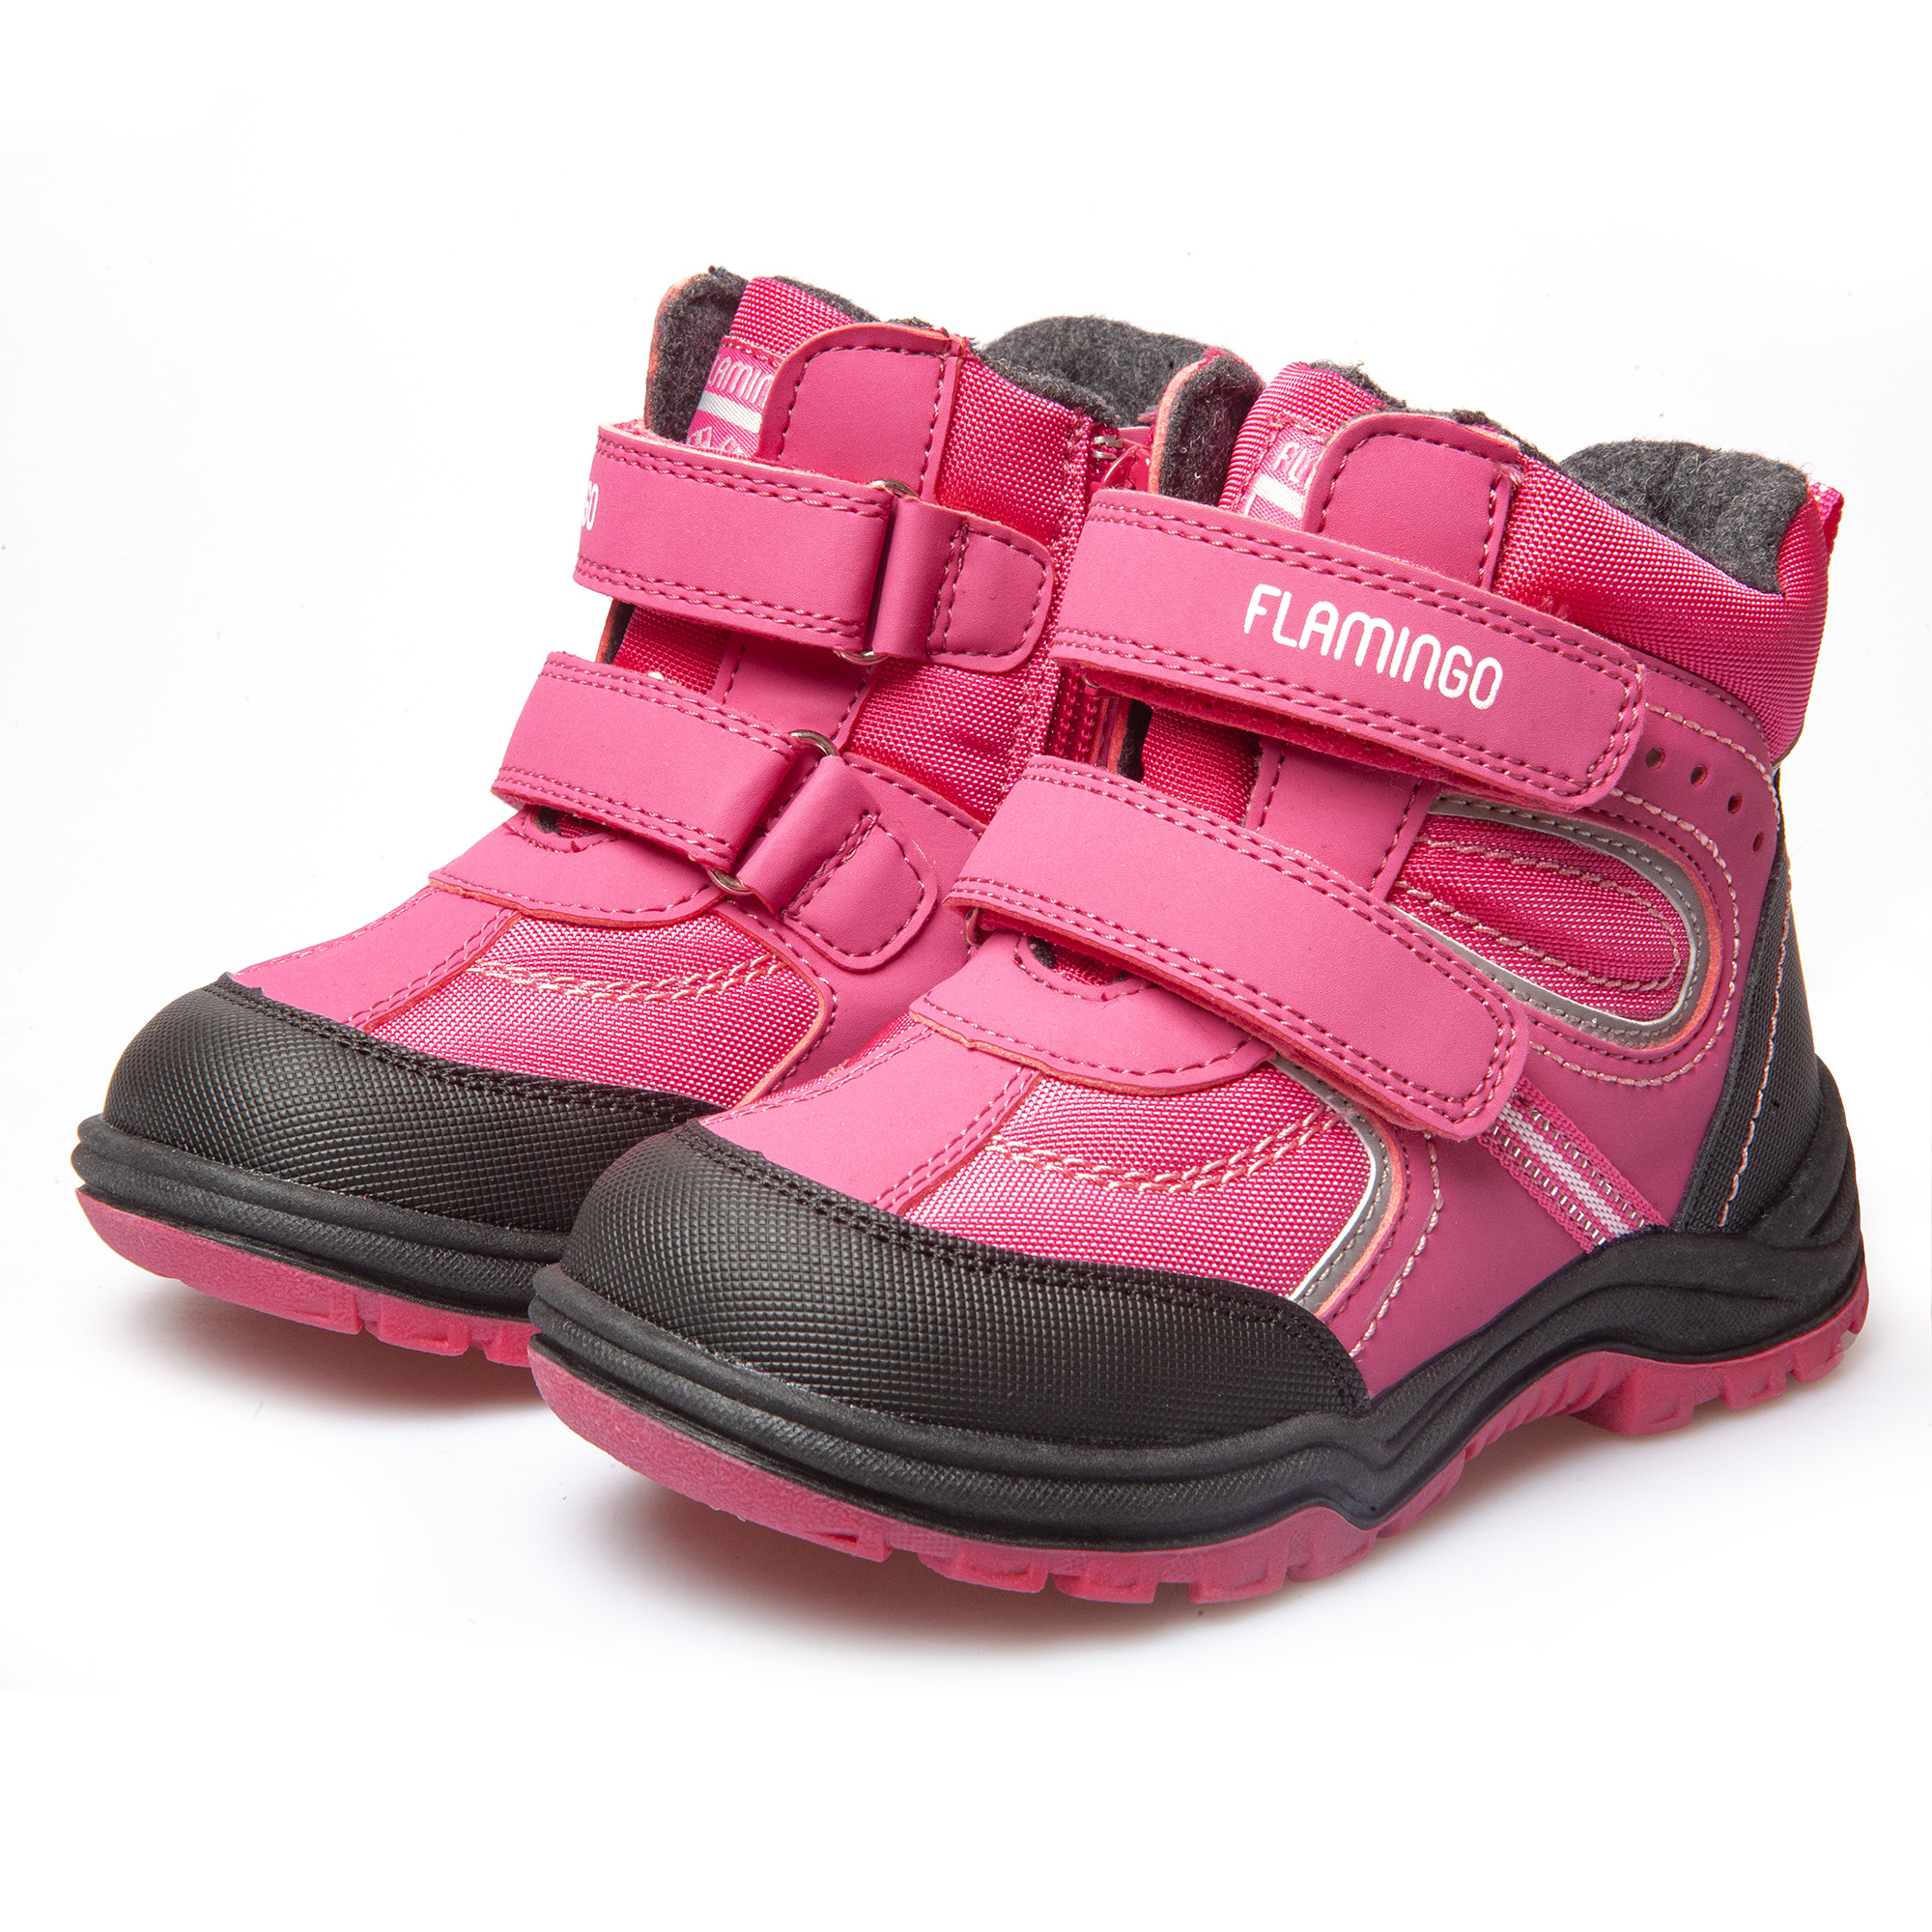 Shoes Flamingo 92B-GB-1527 Shoes For Boys Shoes For Children 23-28 #